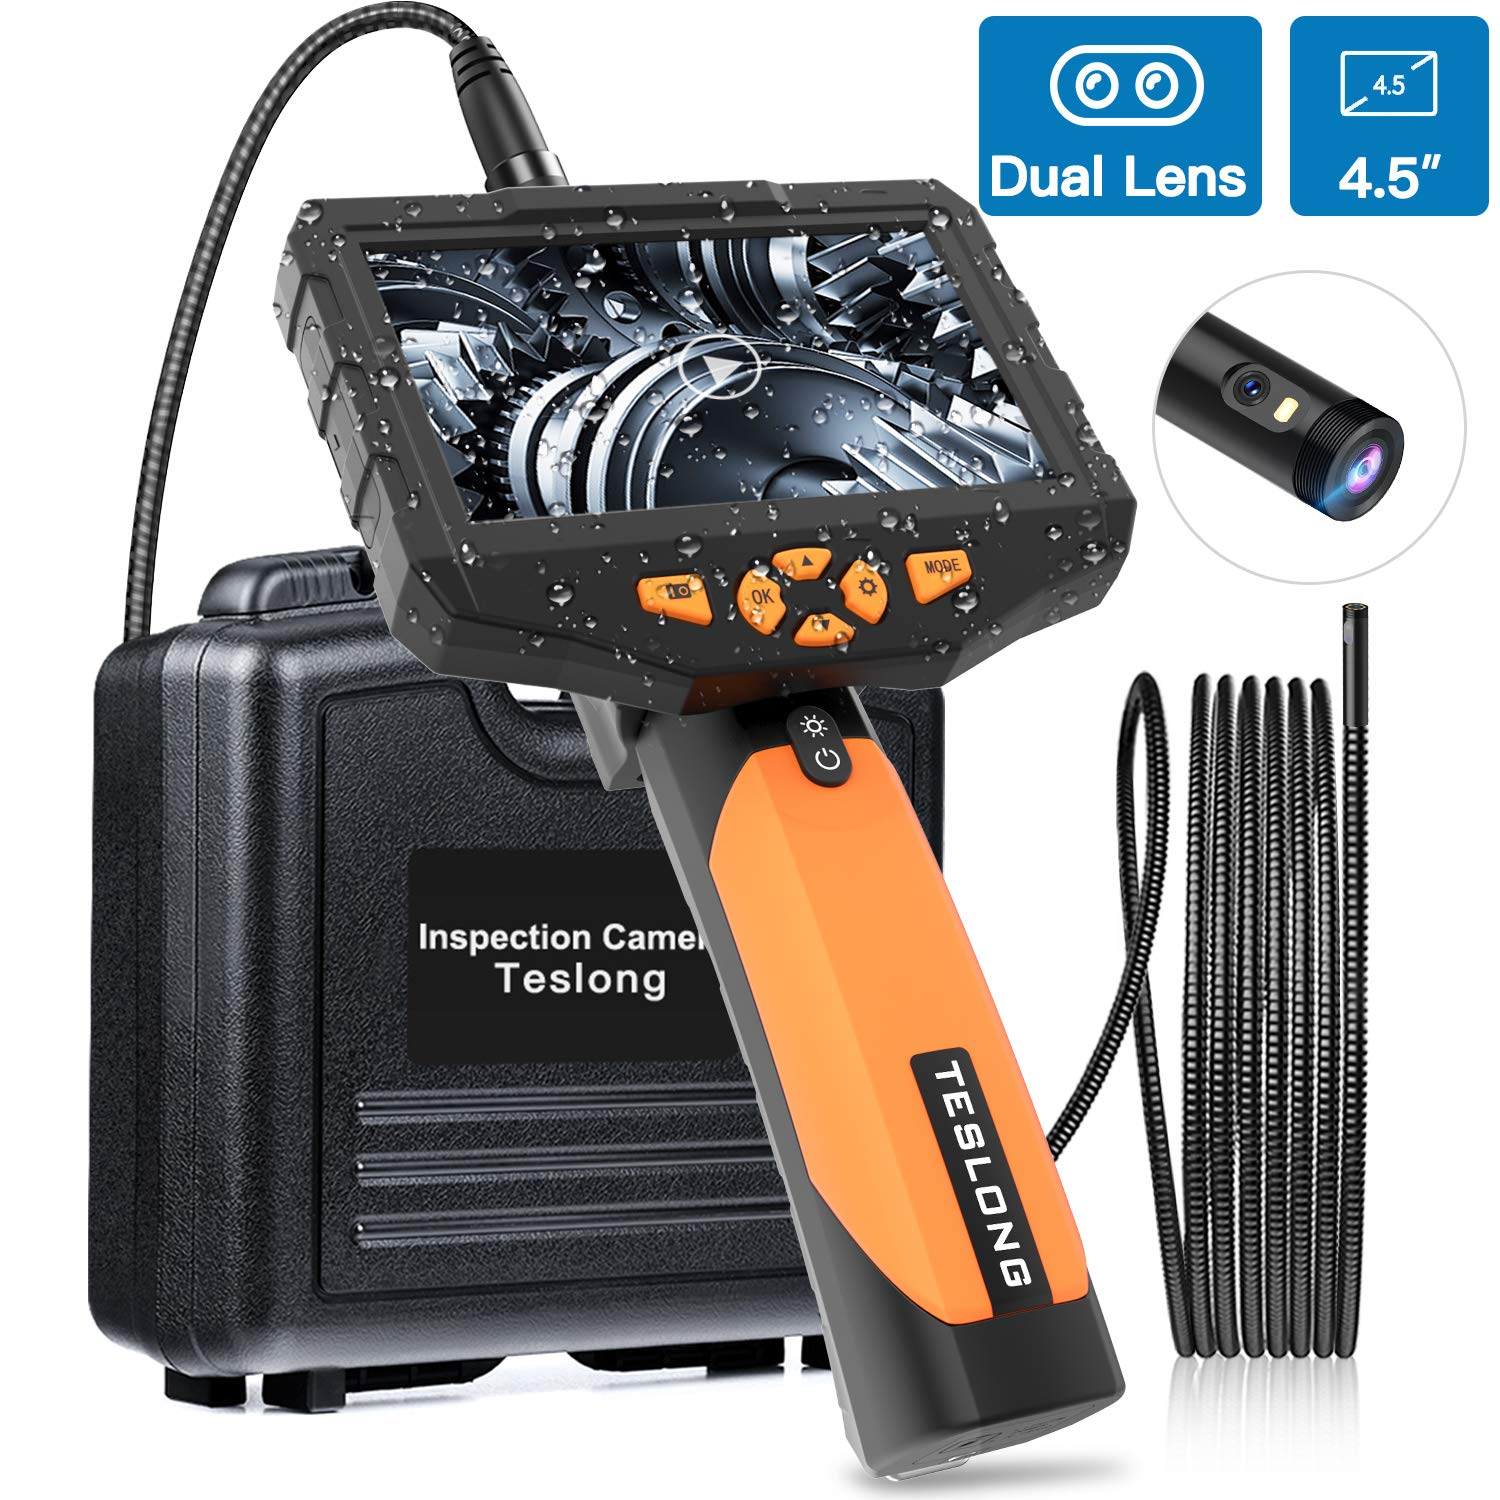 Teslong Inspection Camera 8MM, Industrial Endoscope-Borescope, 9.84 ft Cable, 6 LED Lights with Dual Lens, 1080P HD Image, 4.5 Inches Display Screen, 32 GB Card, IP67 Waterproof, Tempered Glass